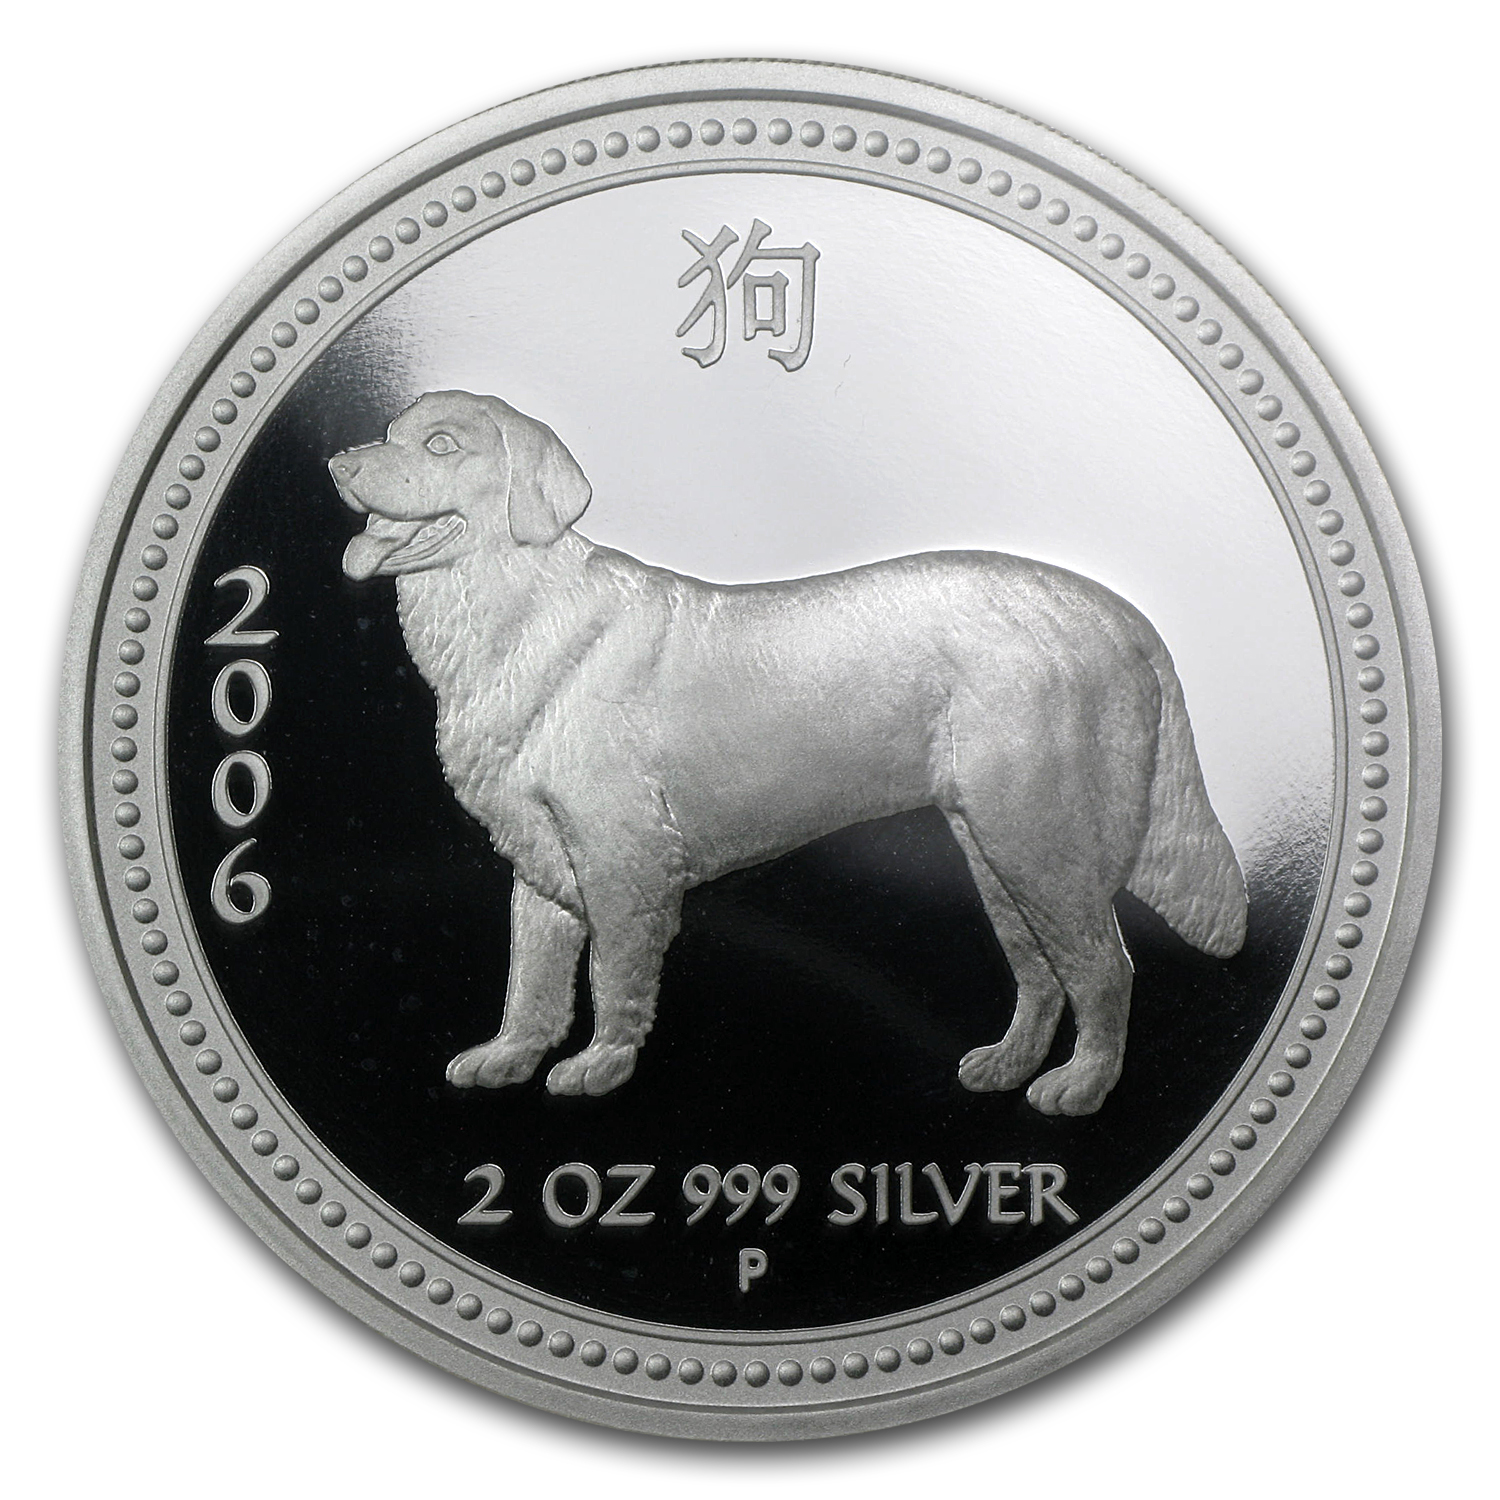 2006 2 oz Proof Silver Lunar Year of the Dog (SI) PF-69 UCAM NGC